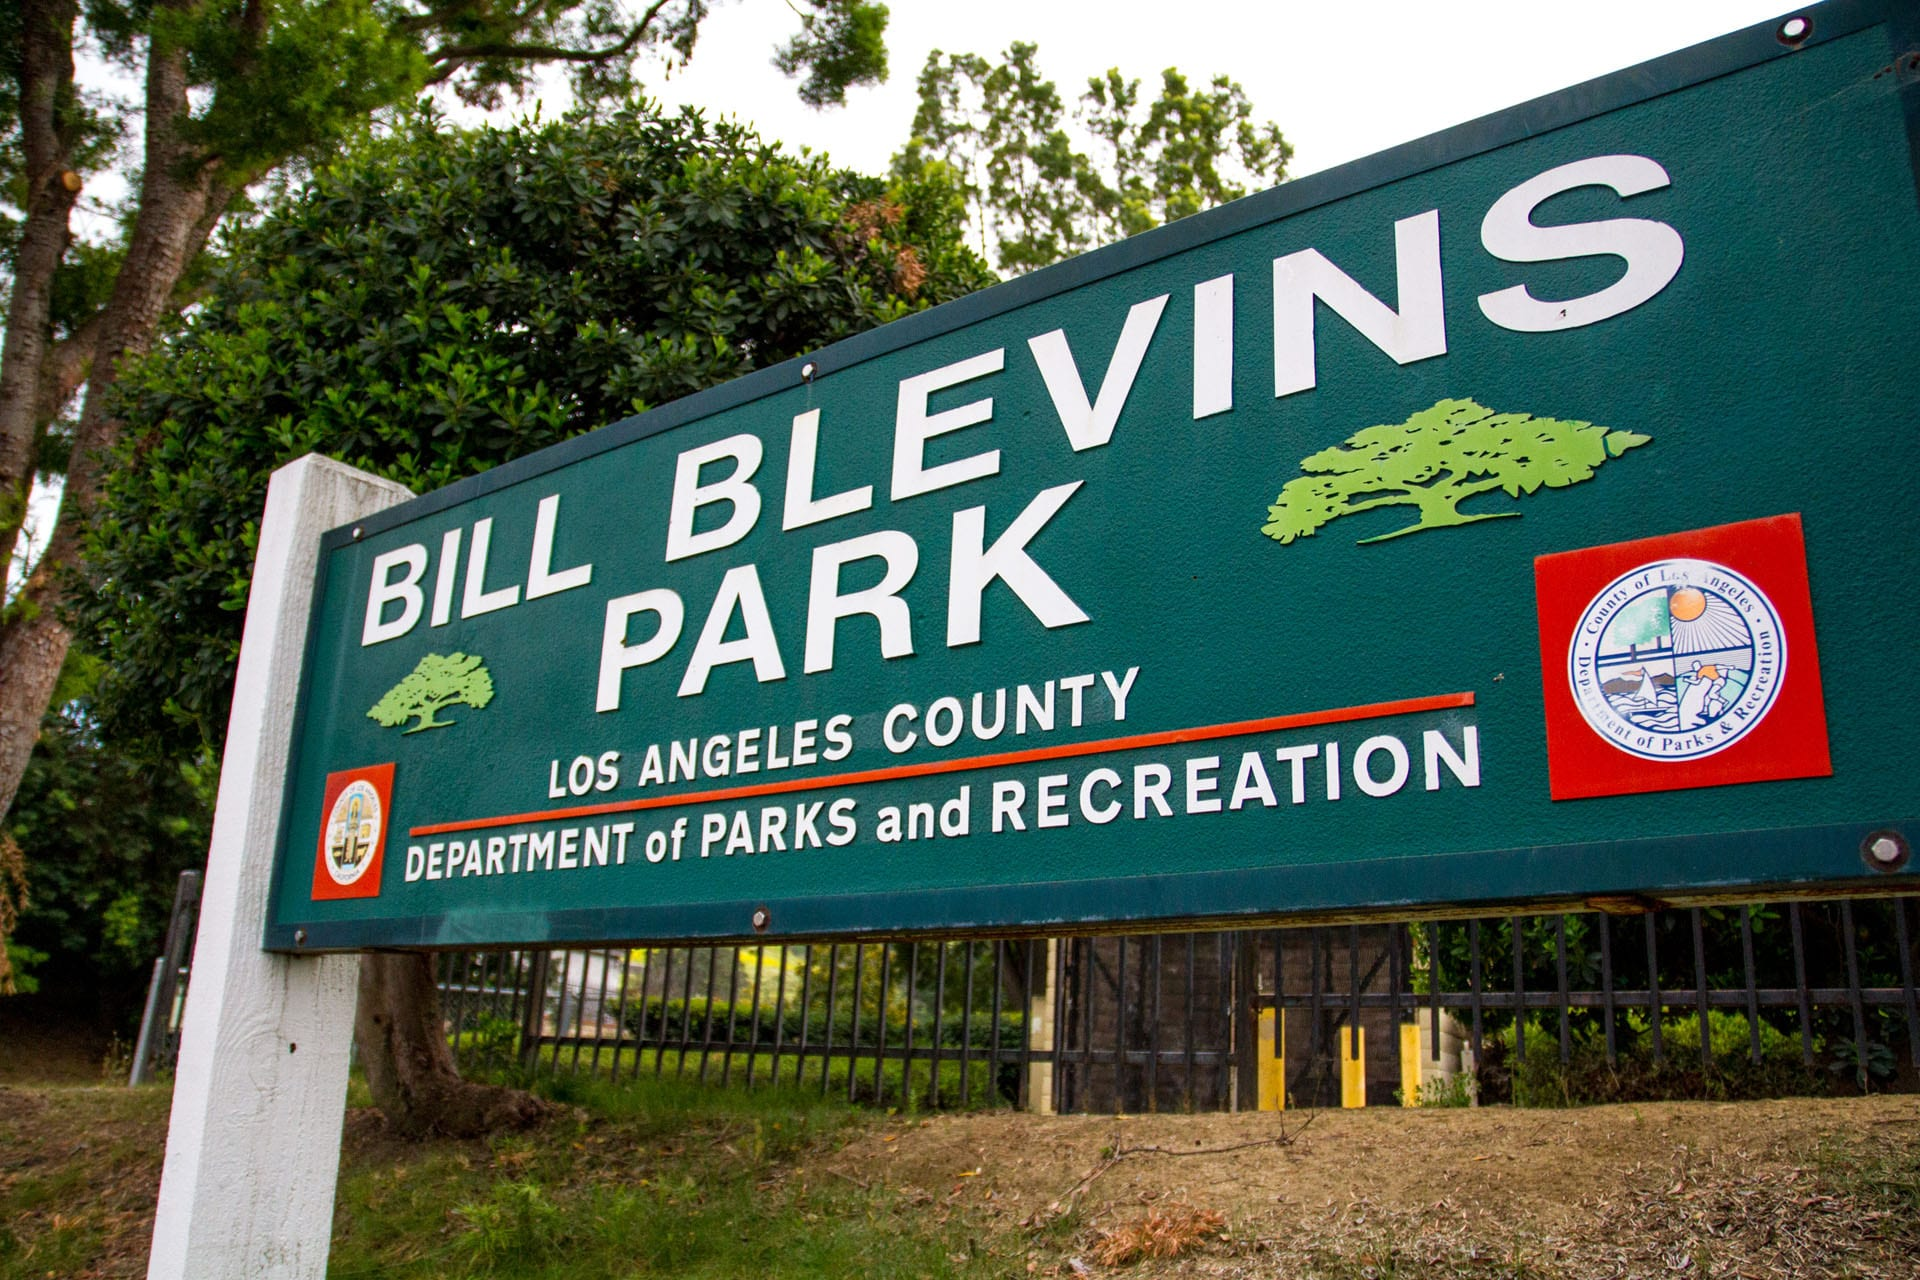 Bill Blevins Park sign